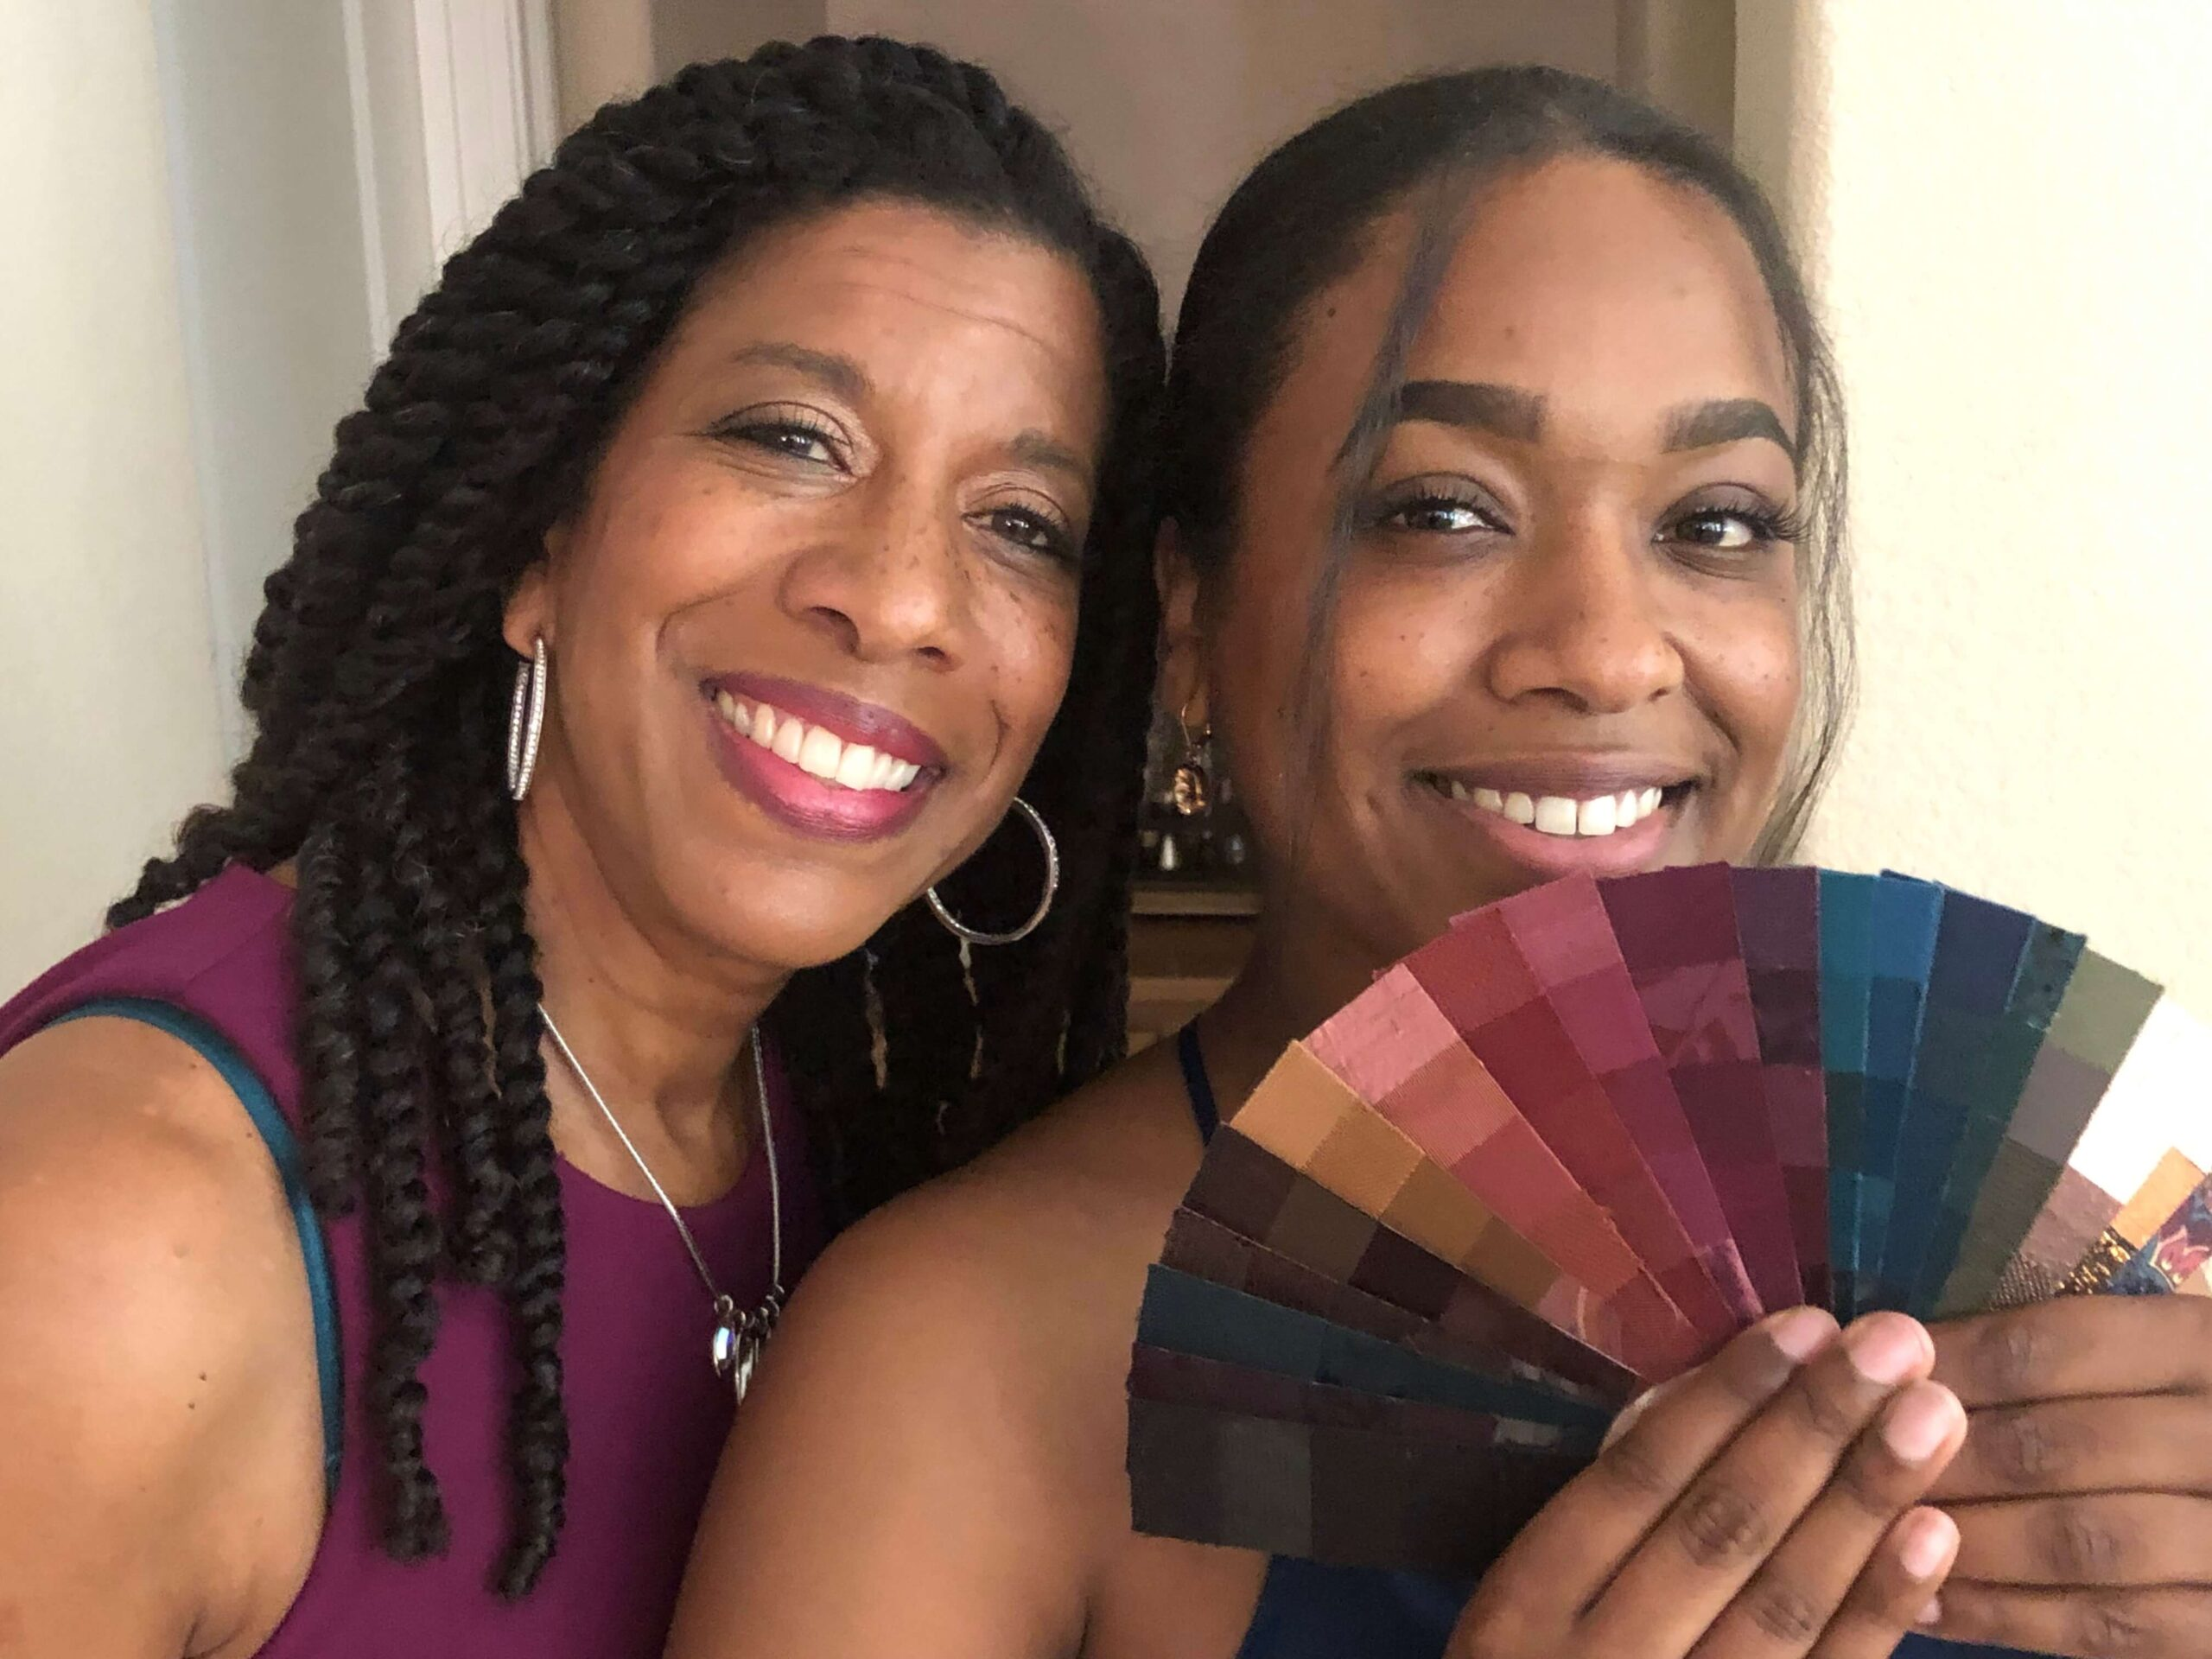 mother and daughter black women color fans cdi